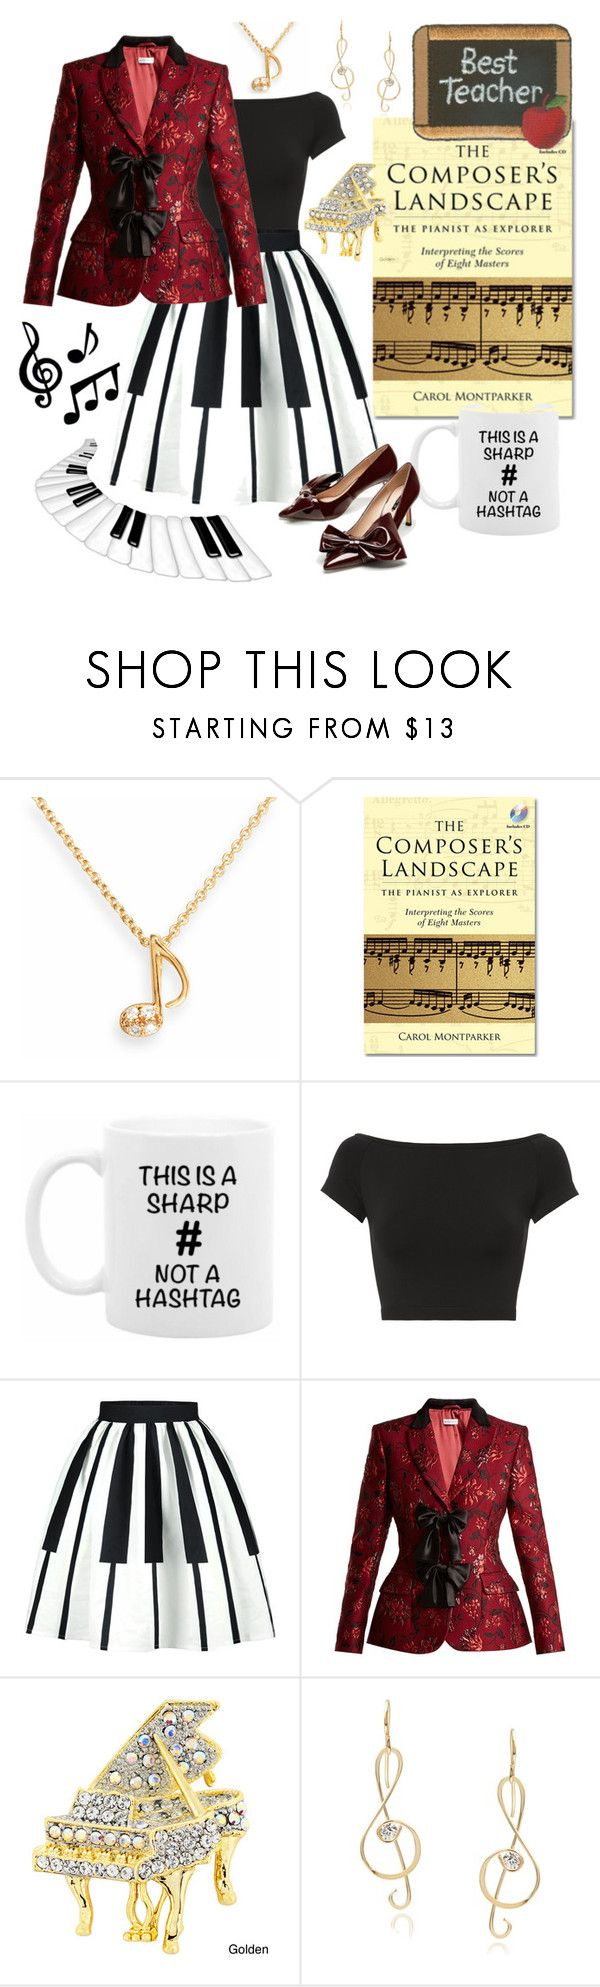 """""""Piano Teacher Outfit"""" by giovanina-001 ❤ liked on Polyvore featuring SOPHIE MILLER, Helmut Lang, Altuzarra and Journee Collection"""